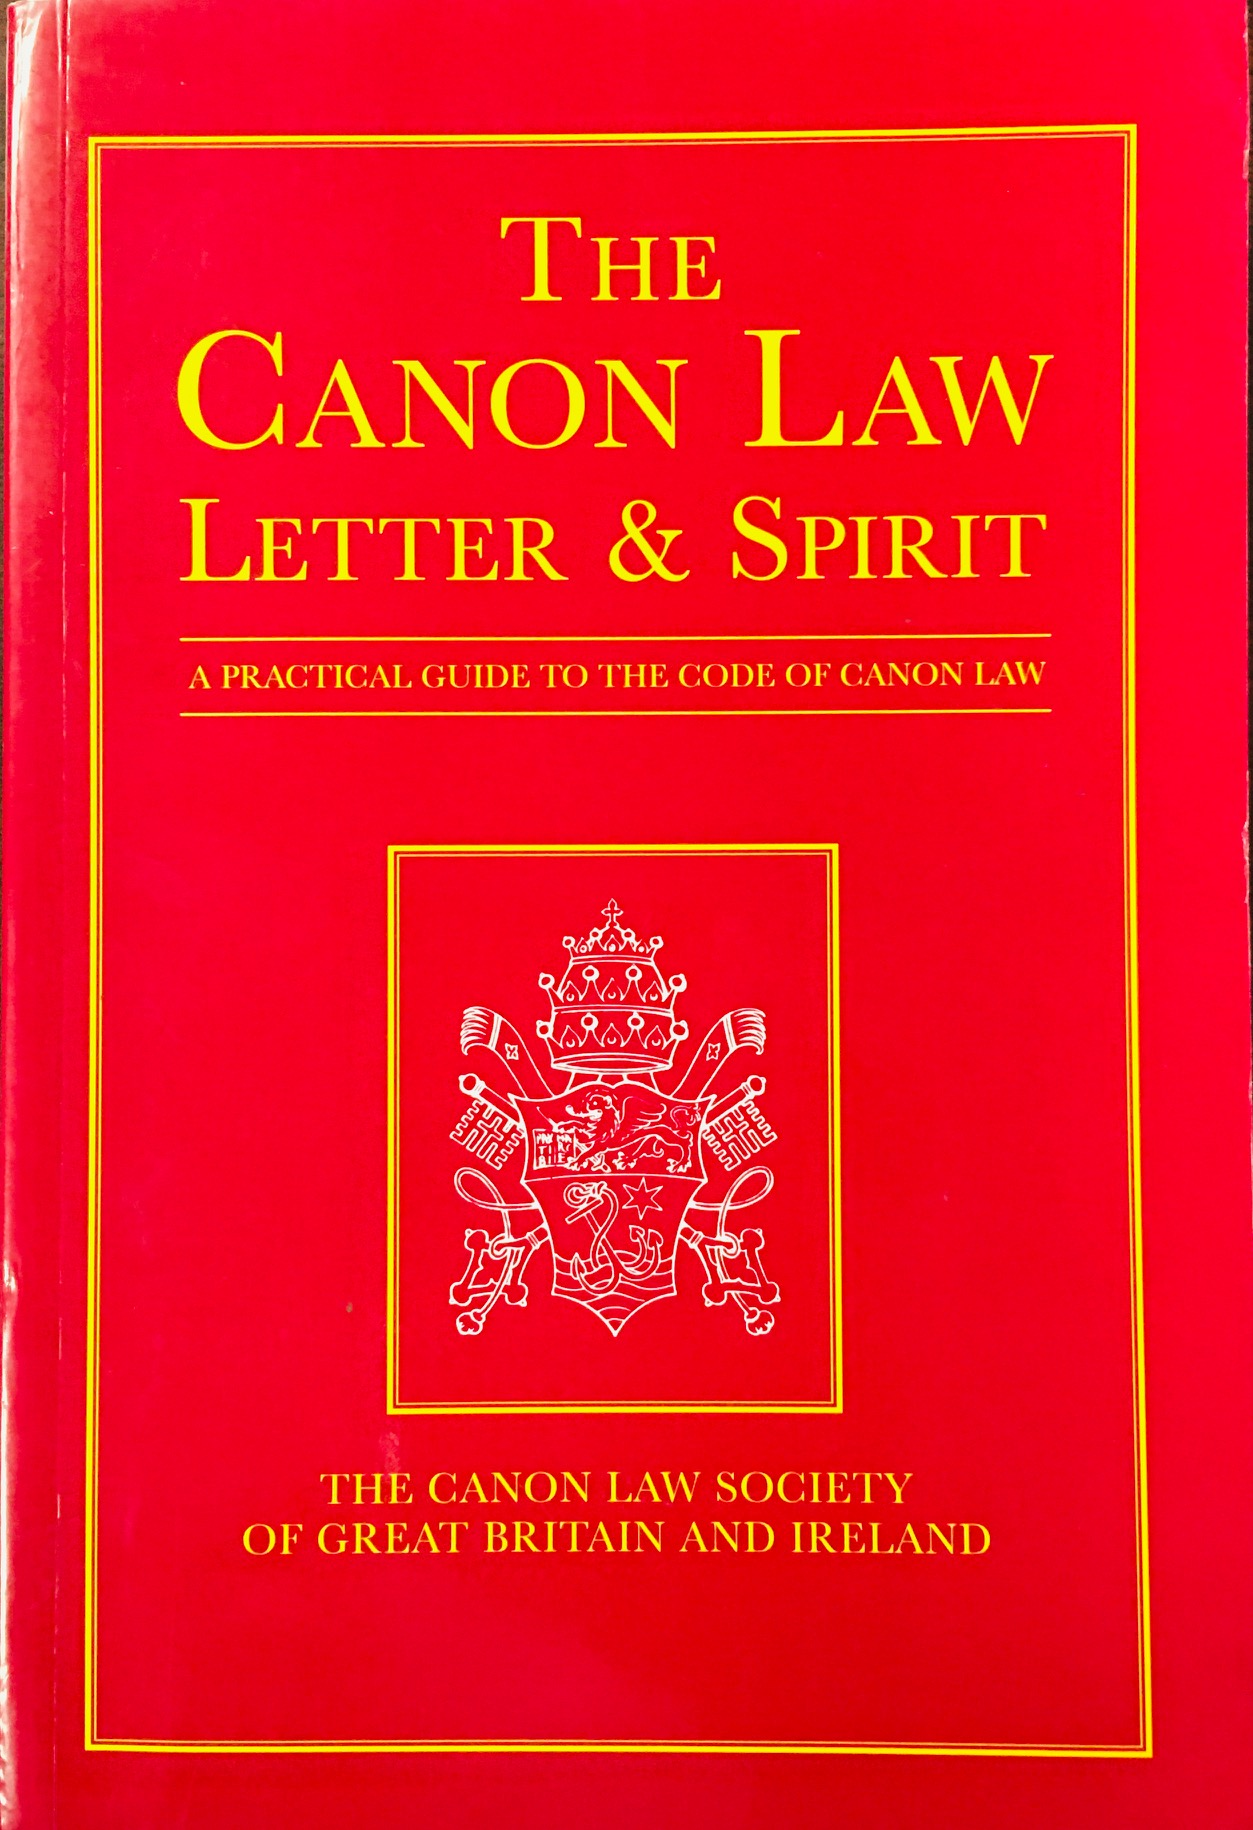 Image for The Canon Law Letter & Spirit: A Practical Guide to the Code of Canon Law